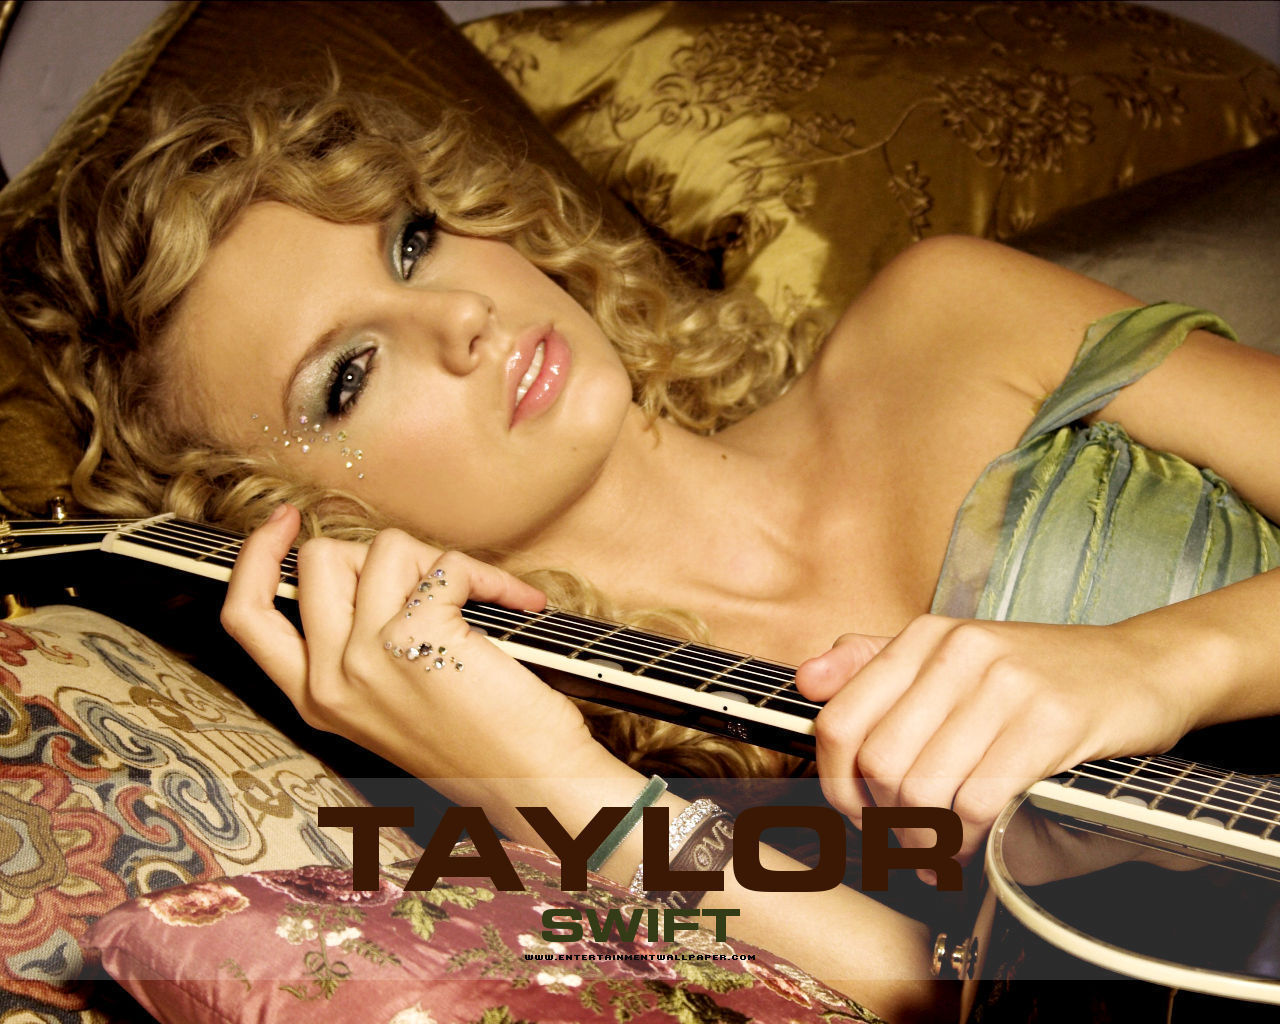 Taylor swift teardrops on